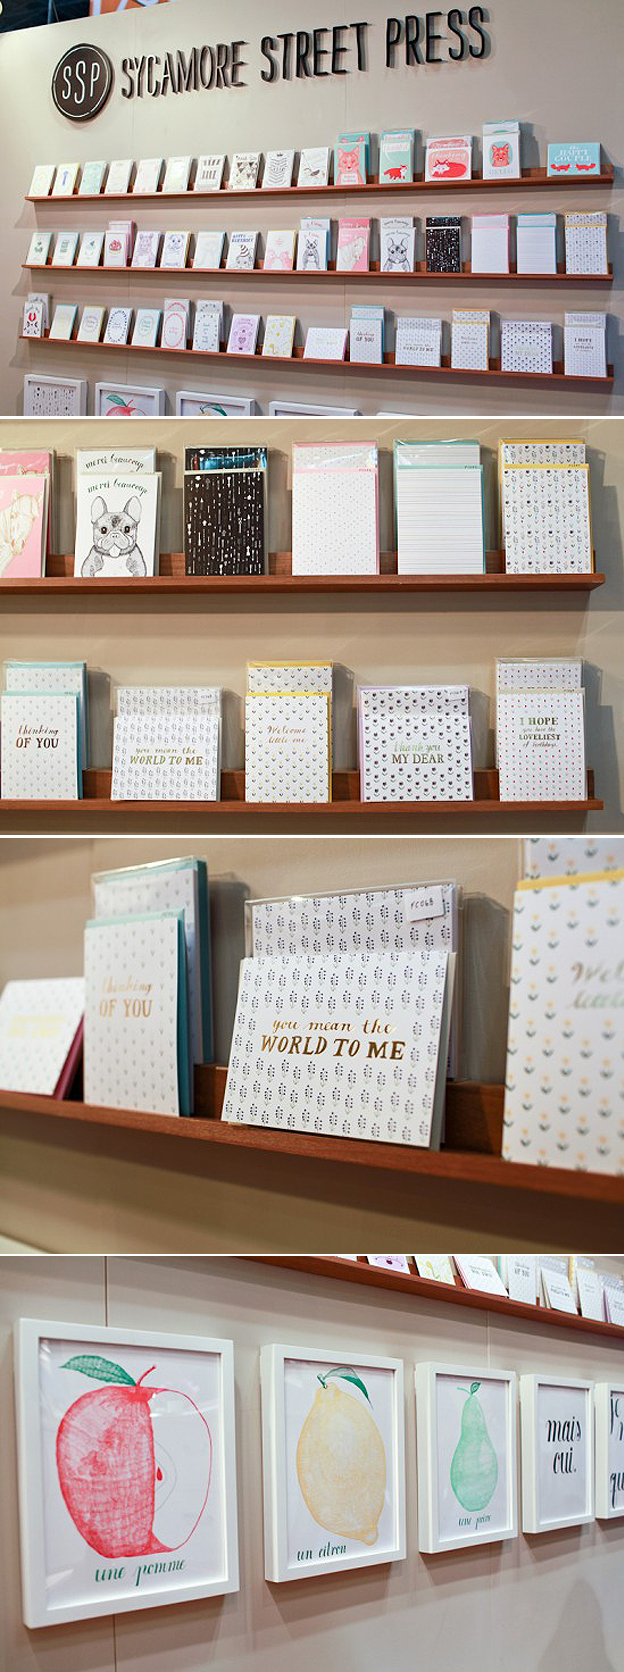 National-Stationery-Show-2013-Oh-So-Beautiful-Paper-Sycamore-Street-Press-24-550x366.jpg